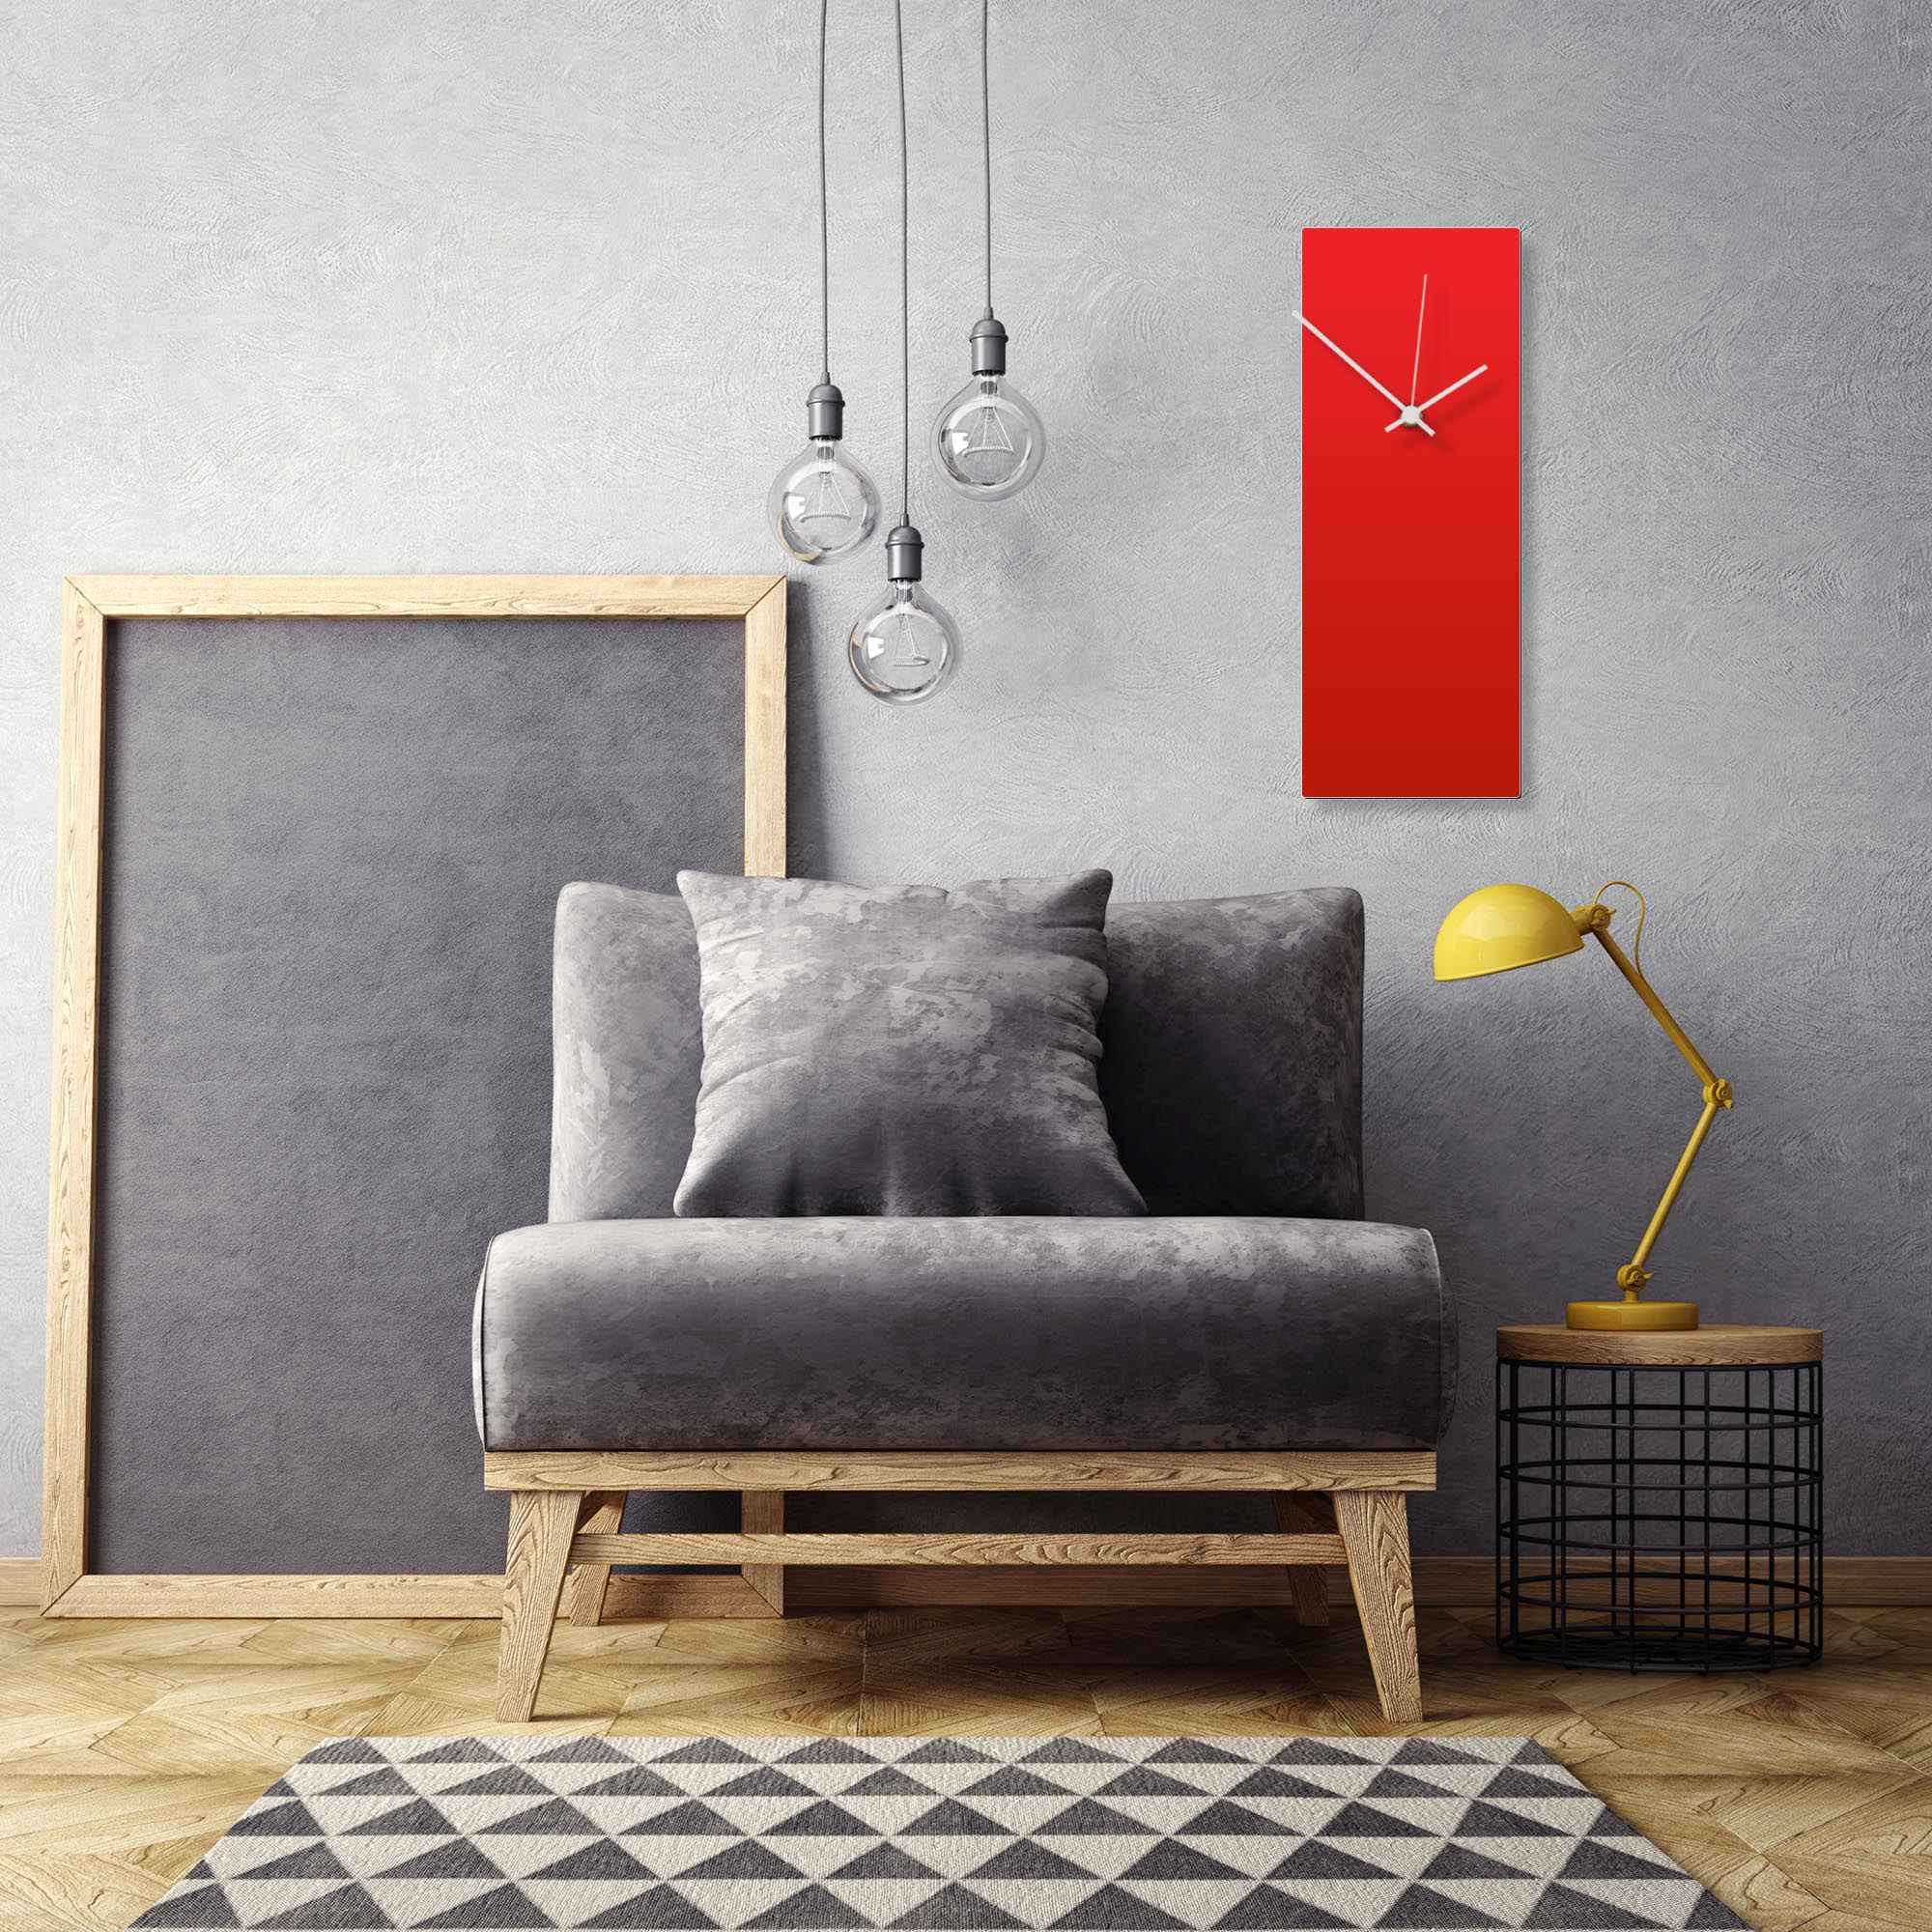 Redout White Clock Large by Adam Schwoeppe Contemporary Clock on Aluminum Polymetal - Alternate View 1